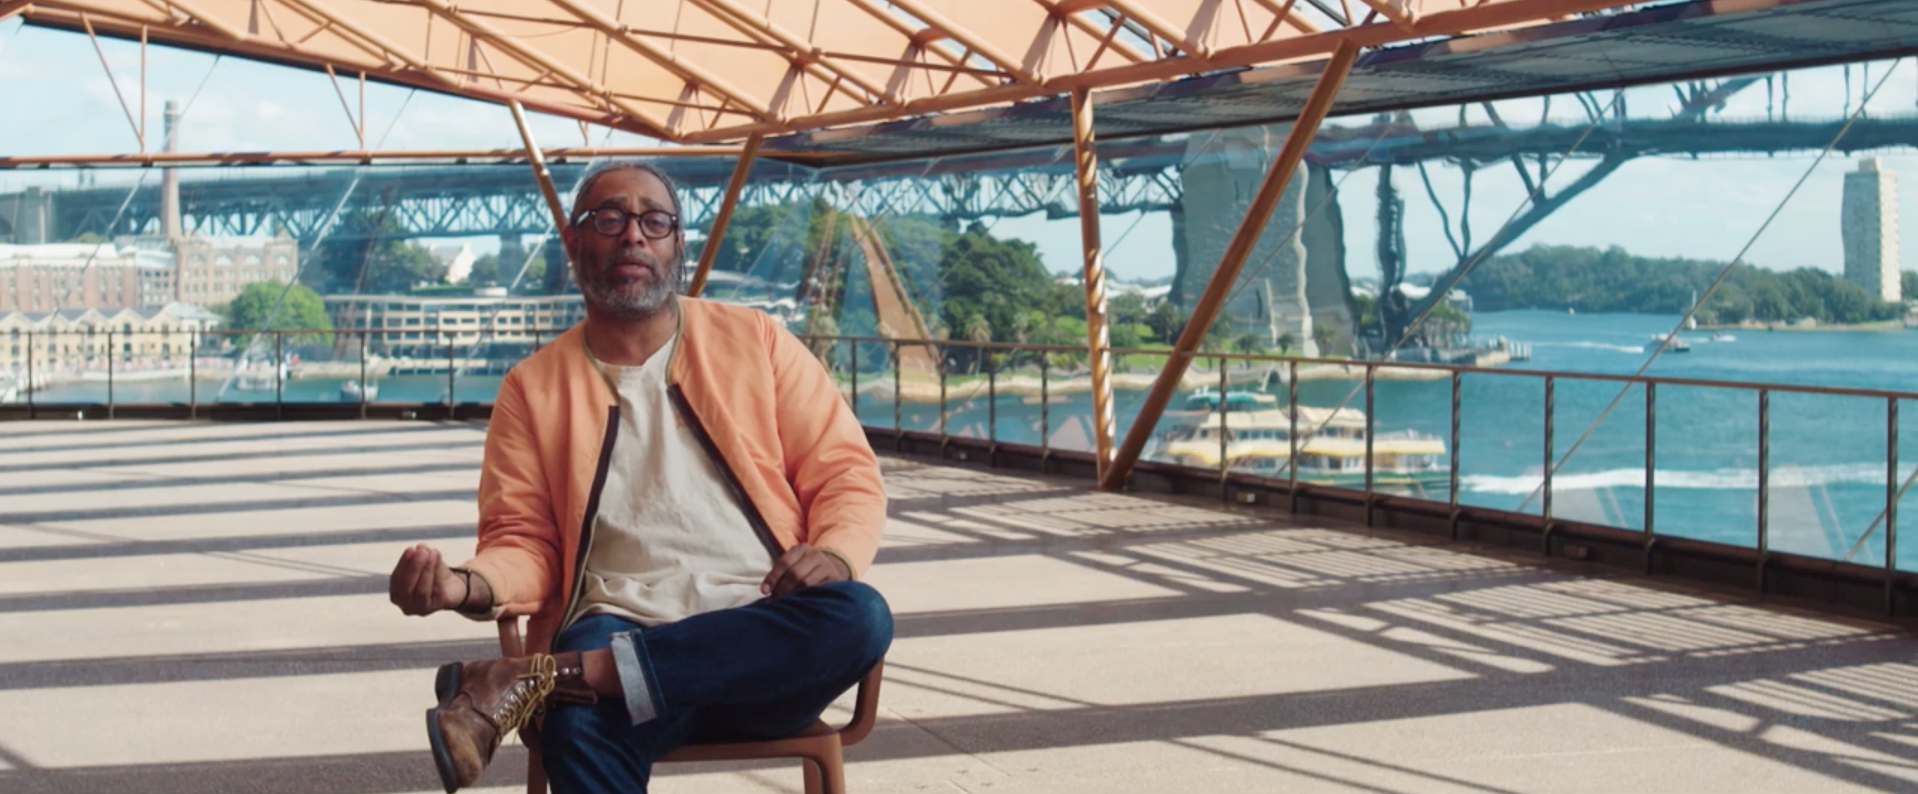 Meet Arthur Jafa, the Solange and Spike Lee collaborator